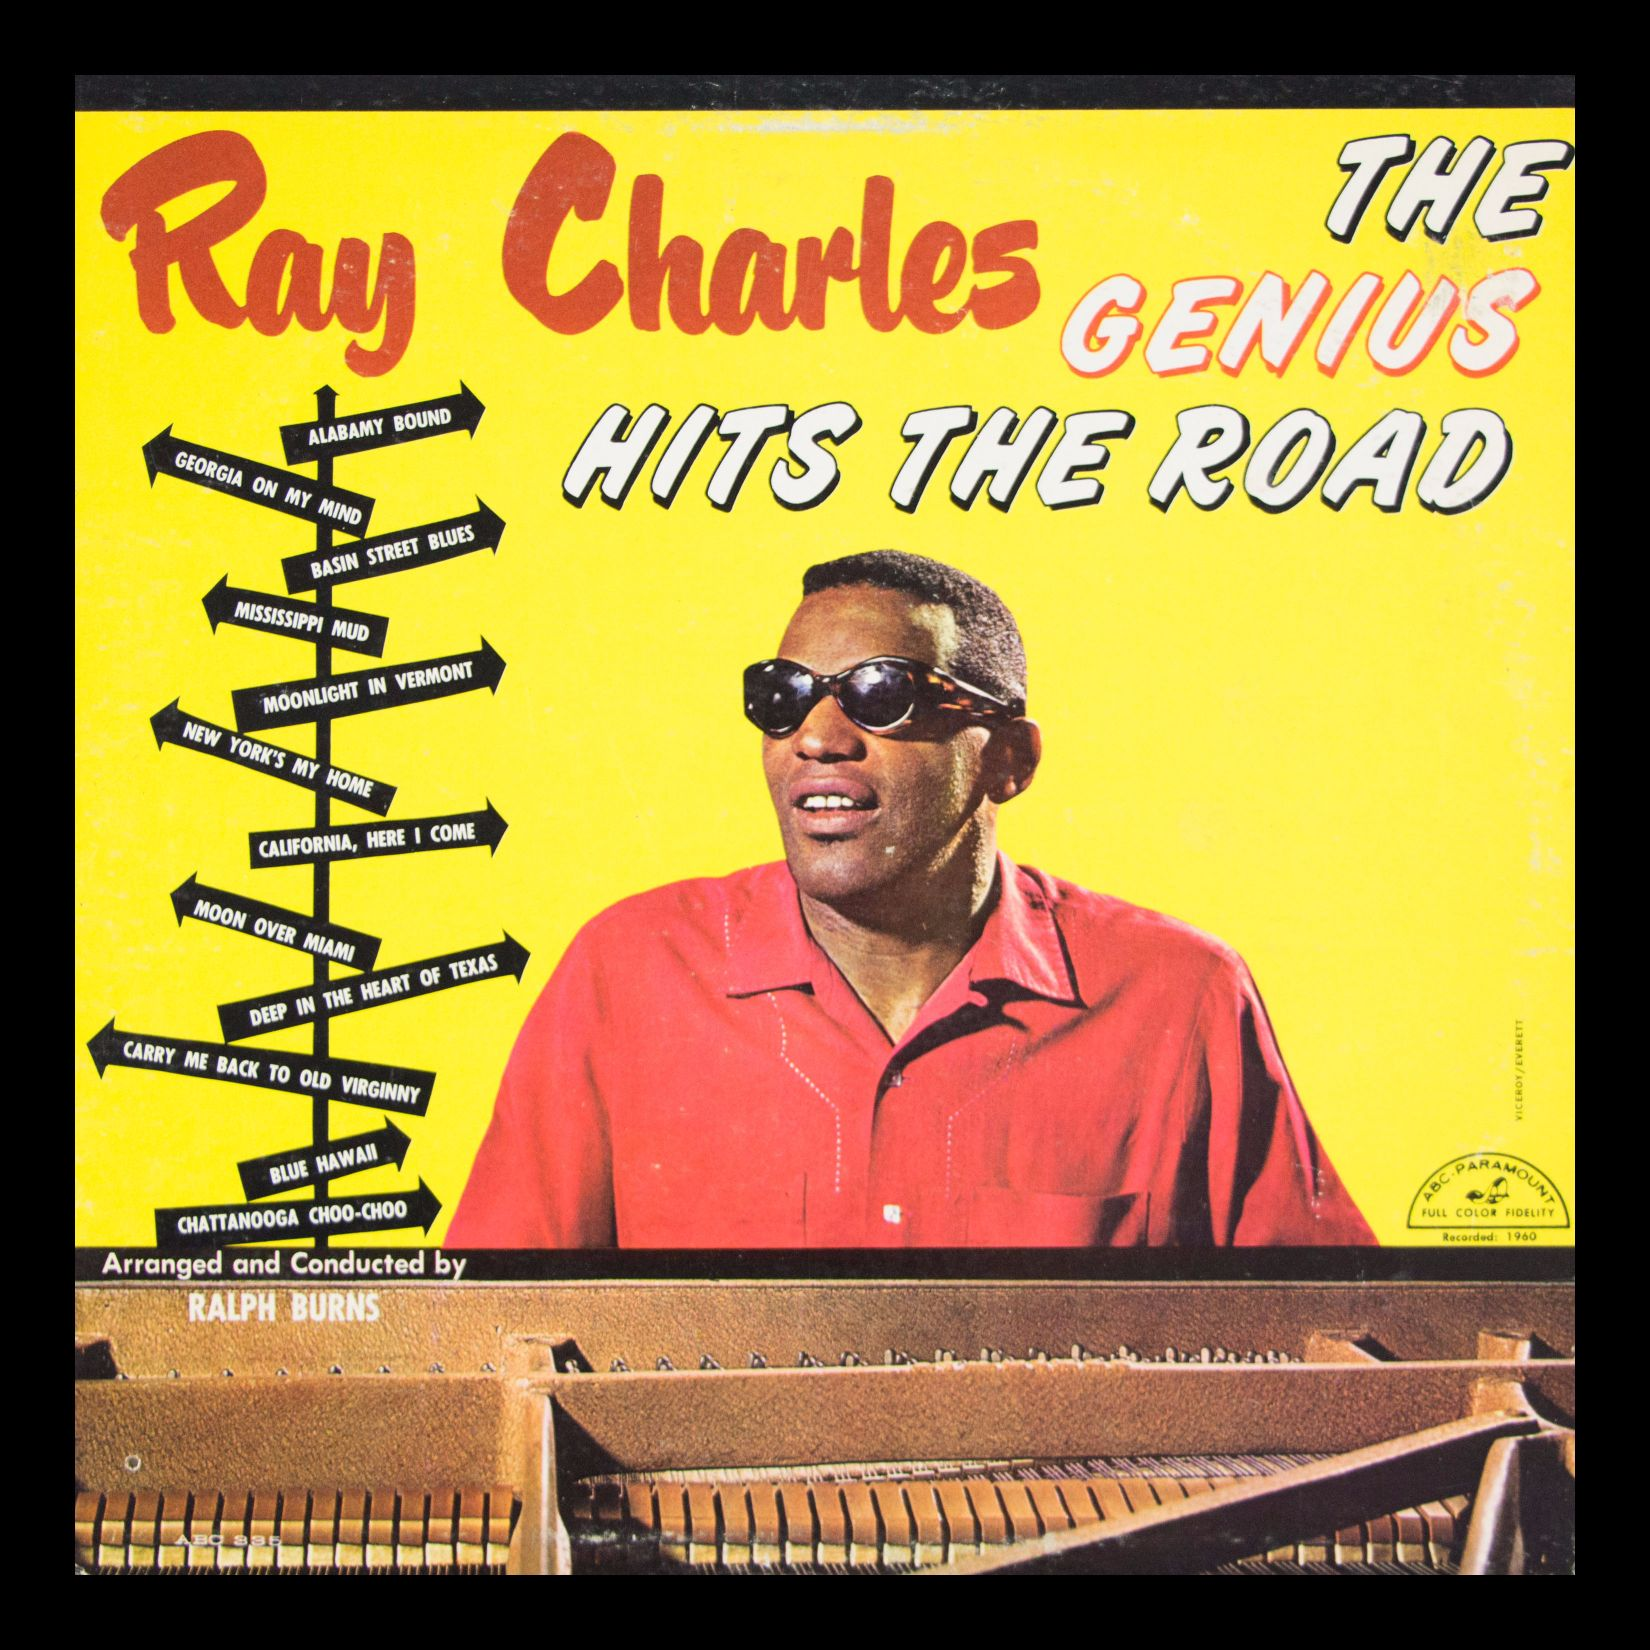 Ray Charles The Genius Hits the Road Vintage Album in Frame